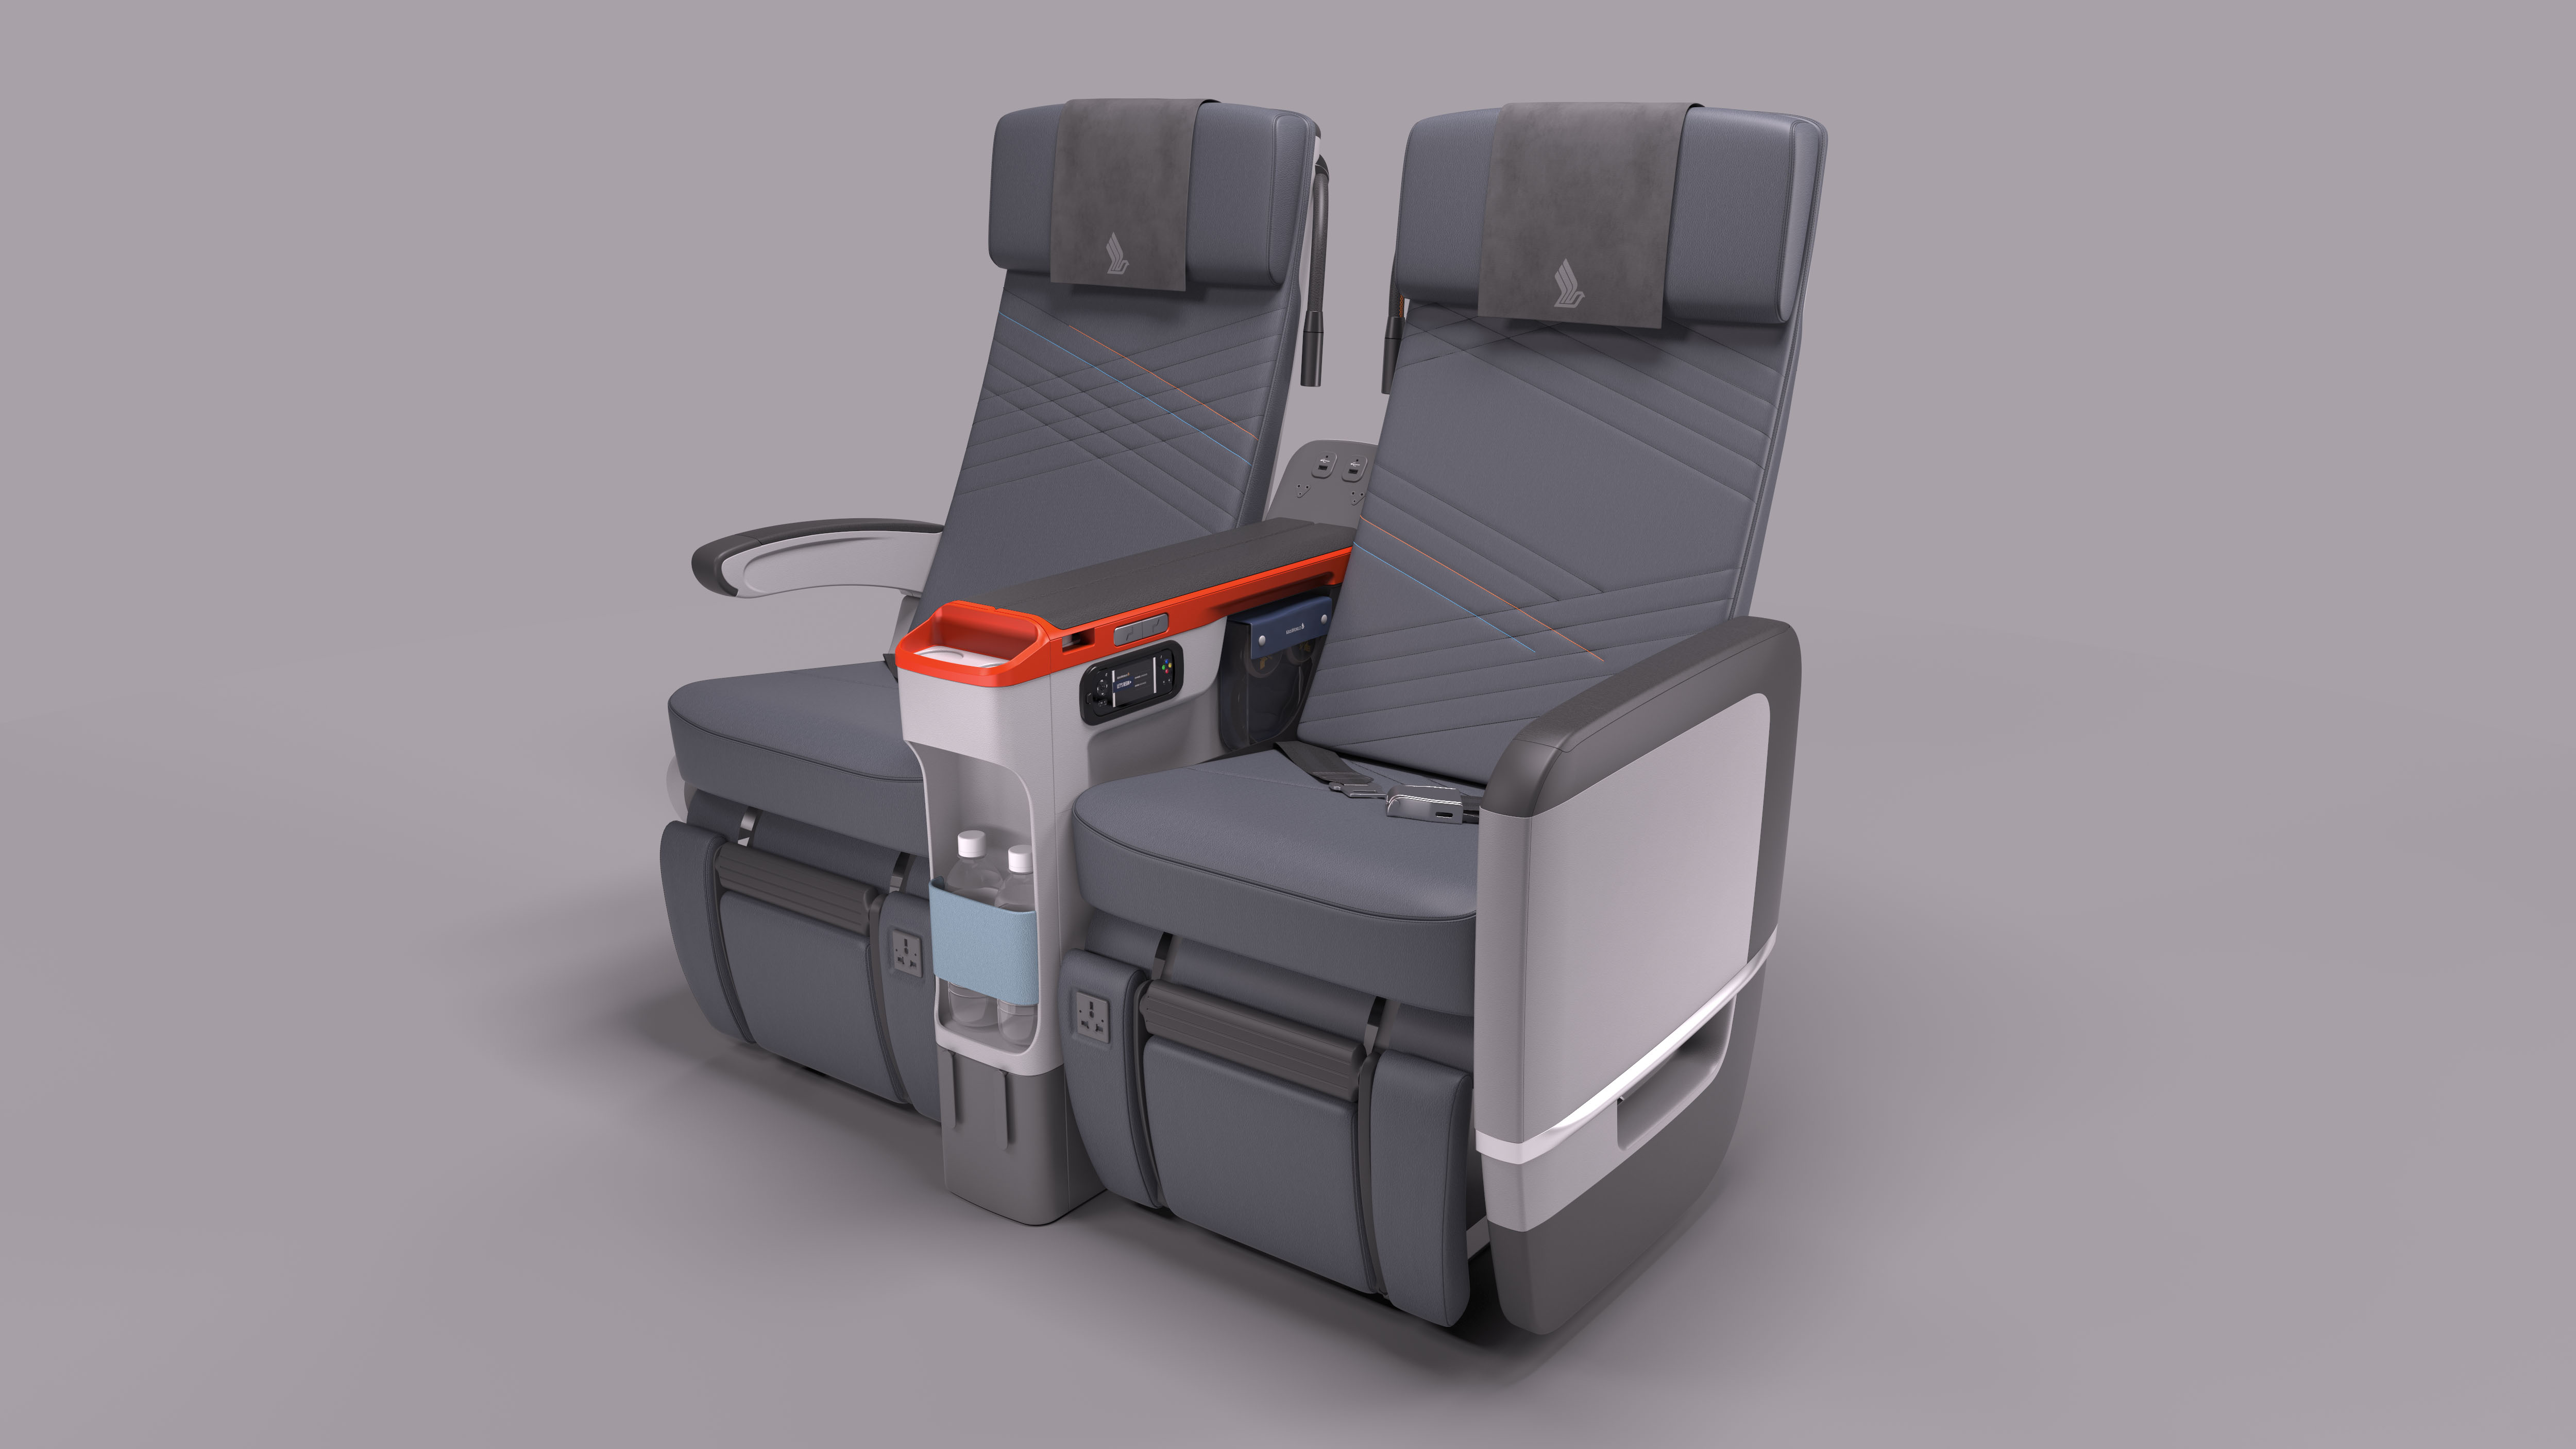 TheDesignAir s Top 10 Best Aviation Product Releases For 2015